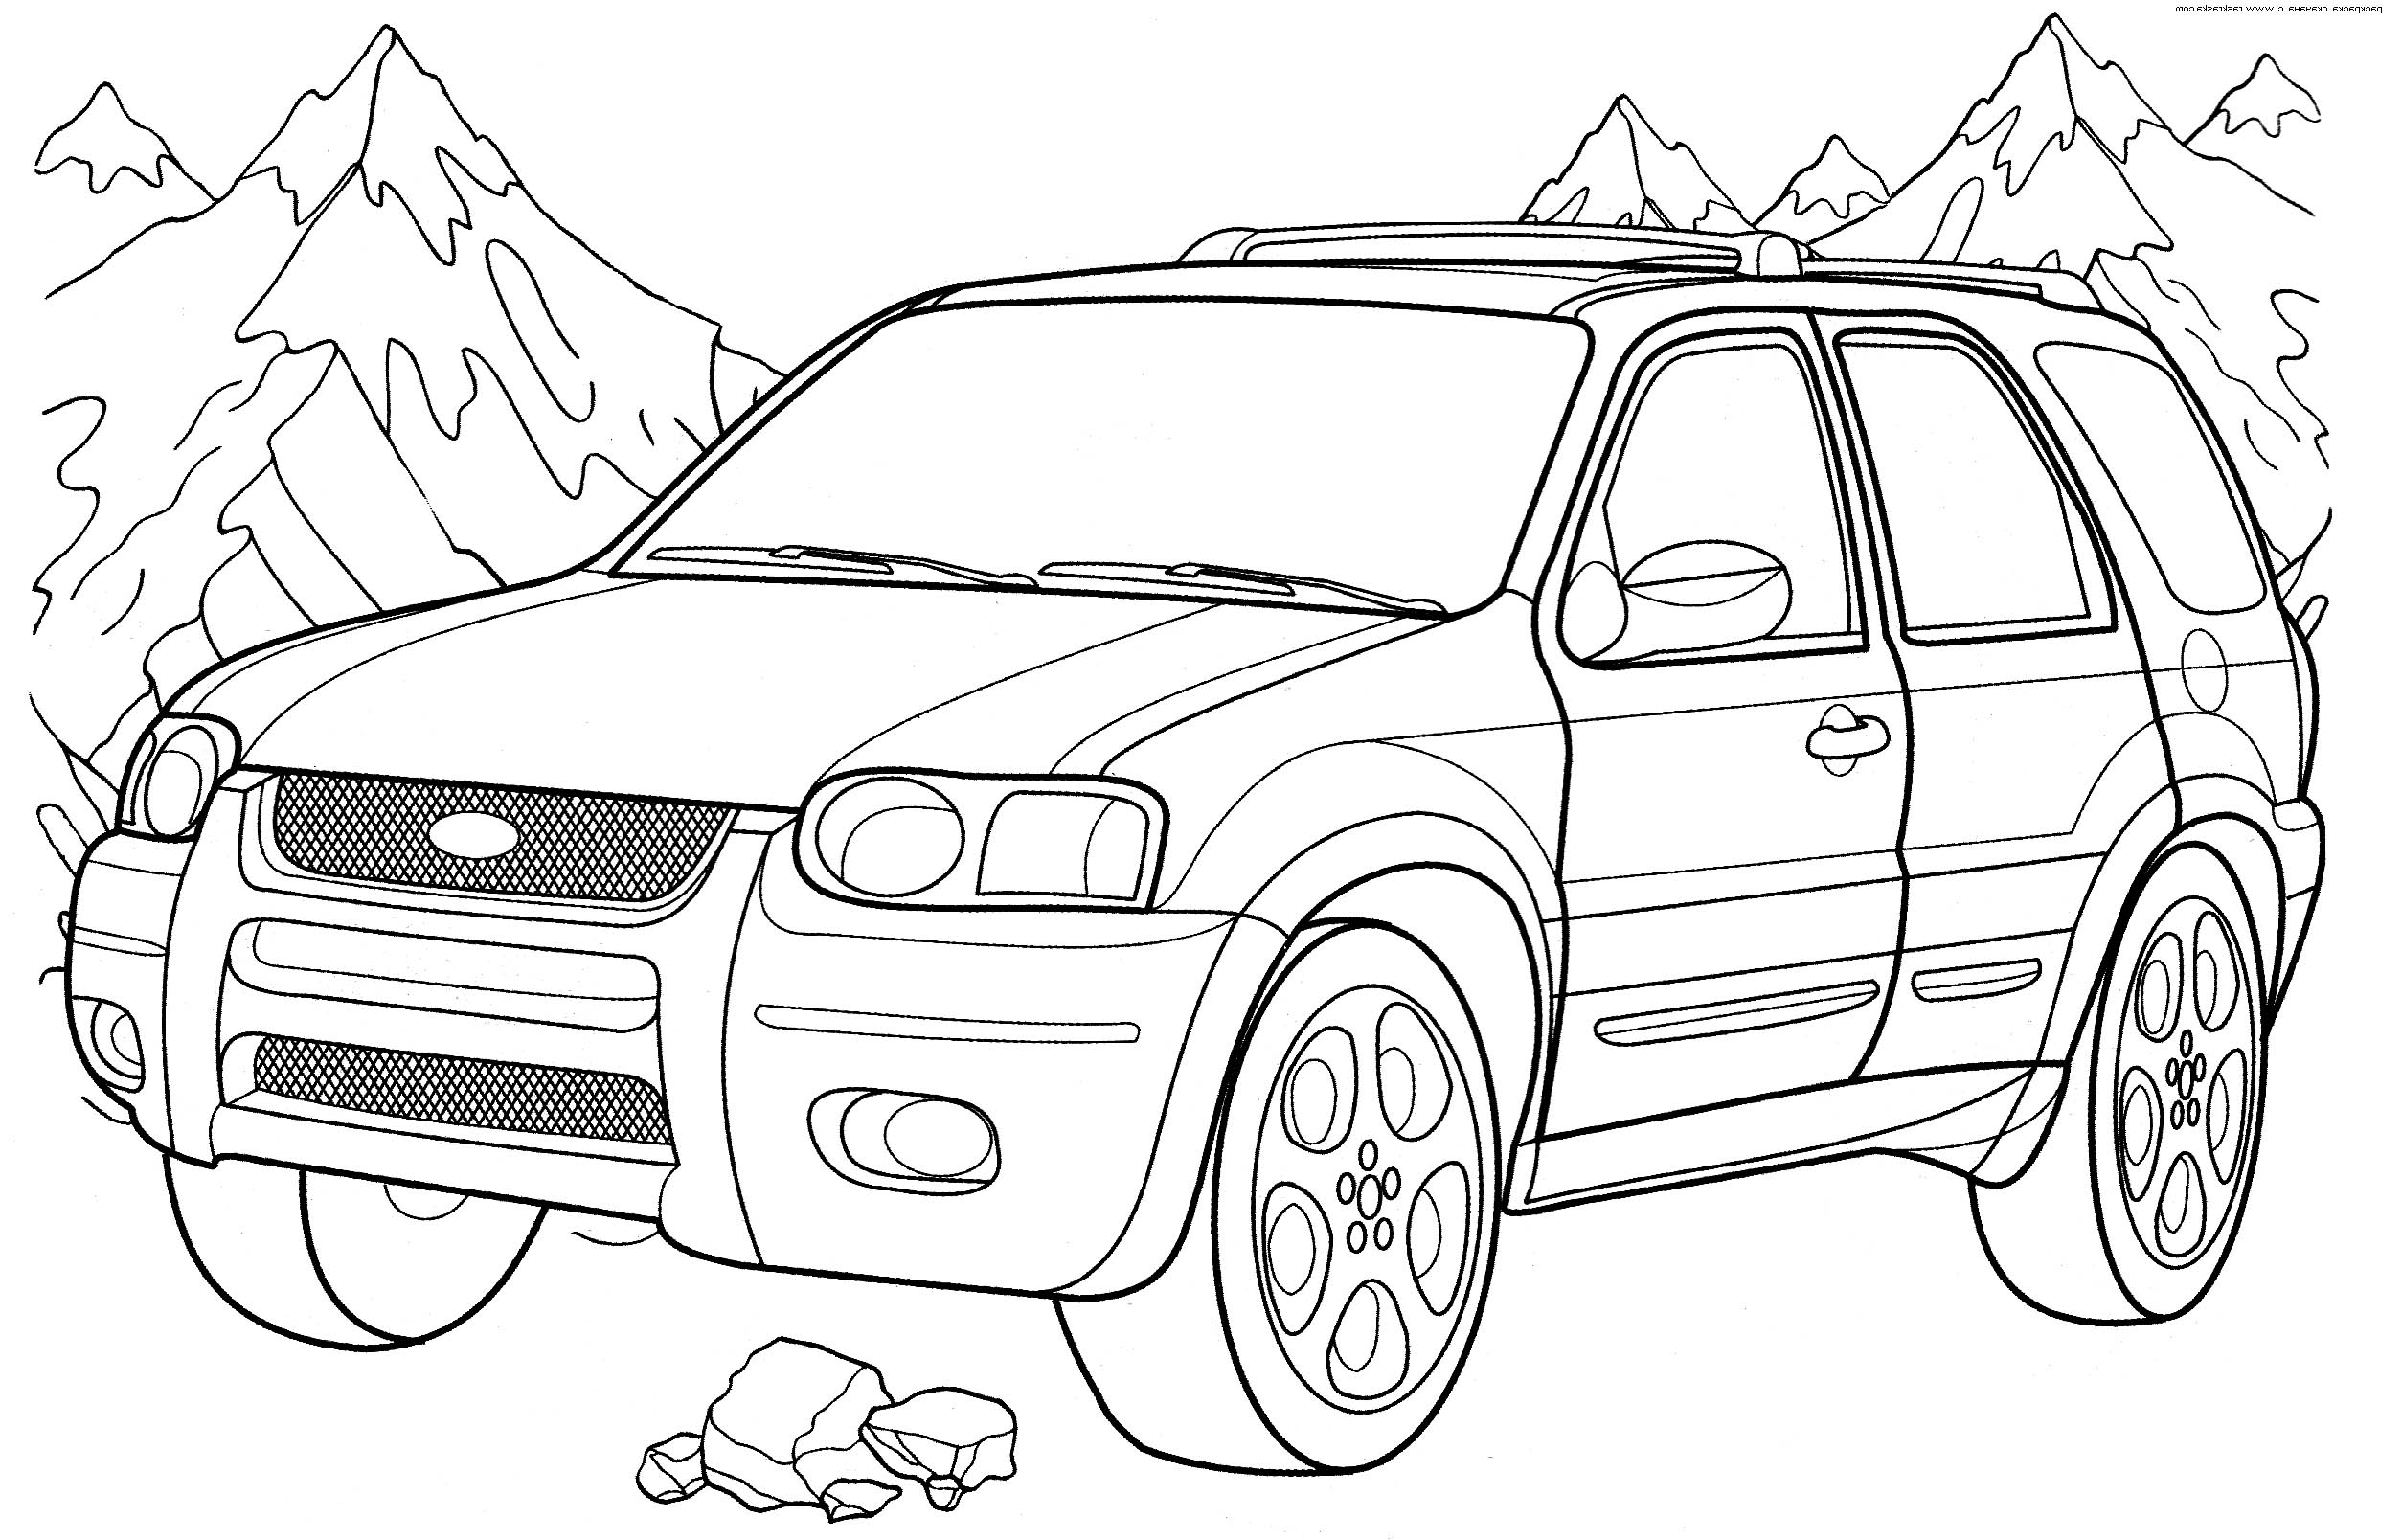 cars for coloring cars coloring pages best coloring pages for kids for cars coloring